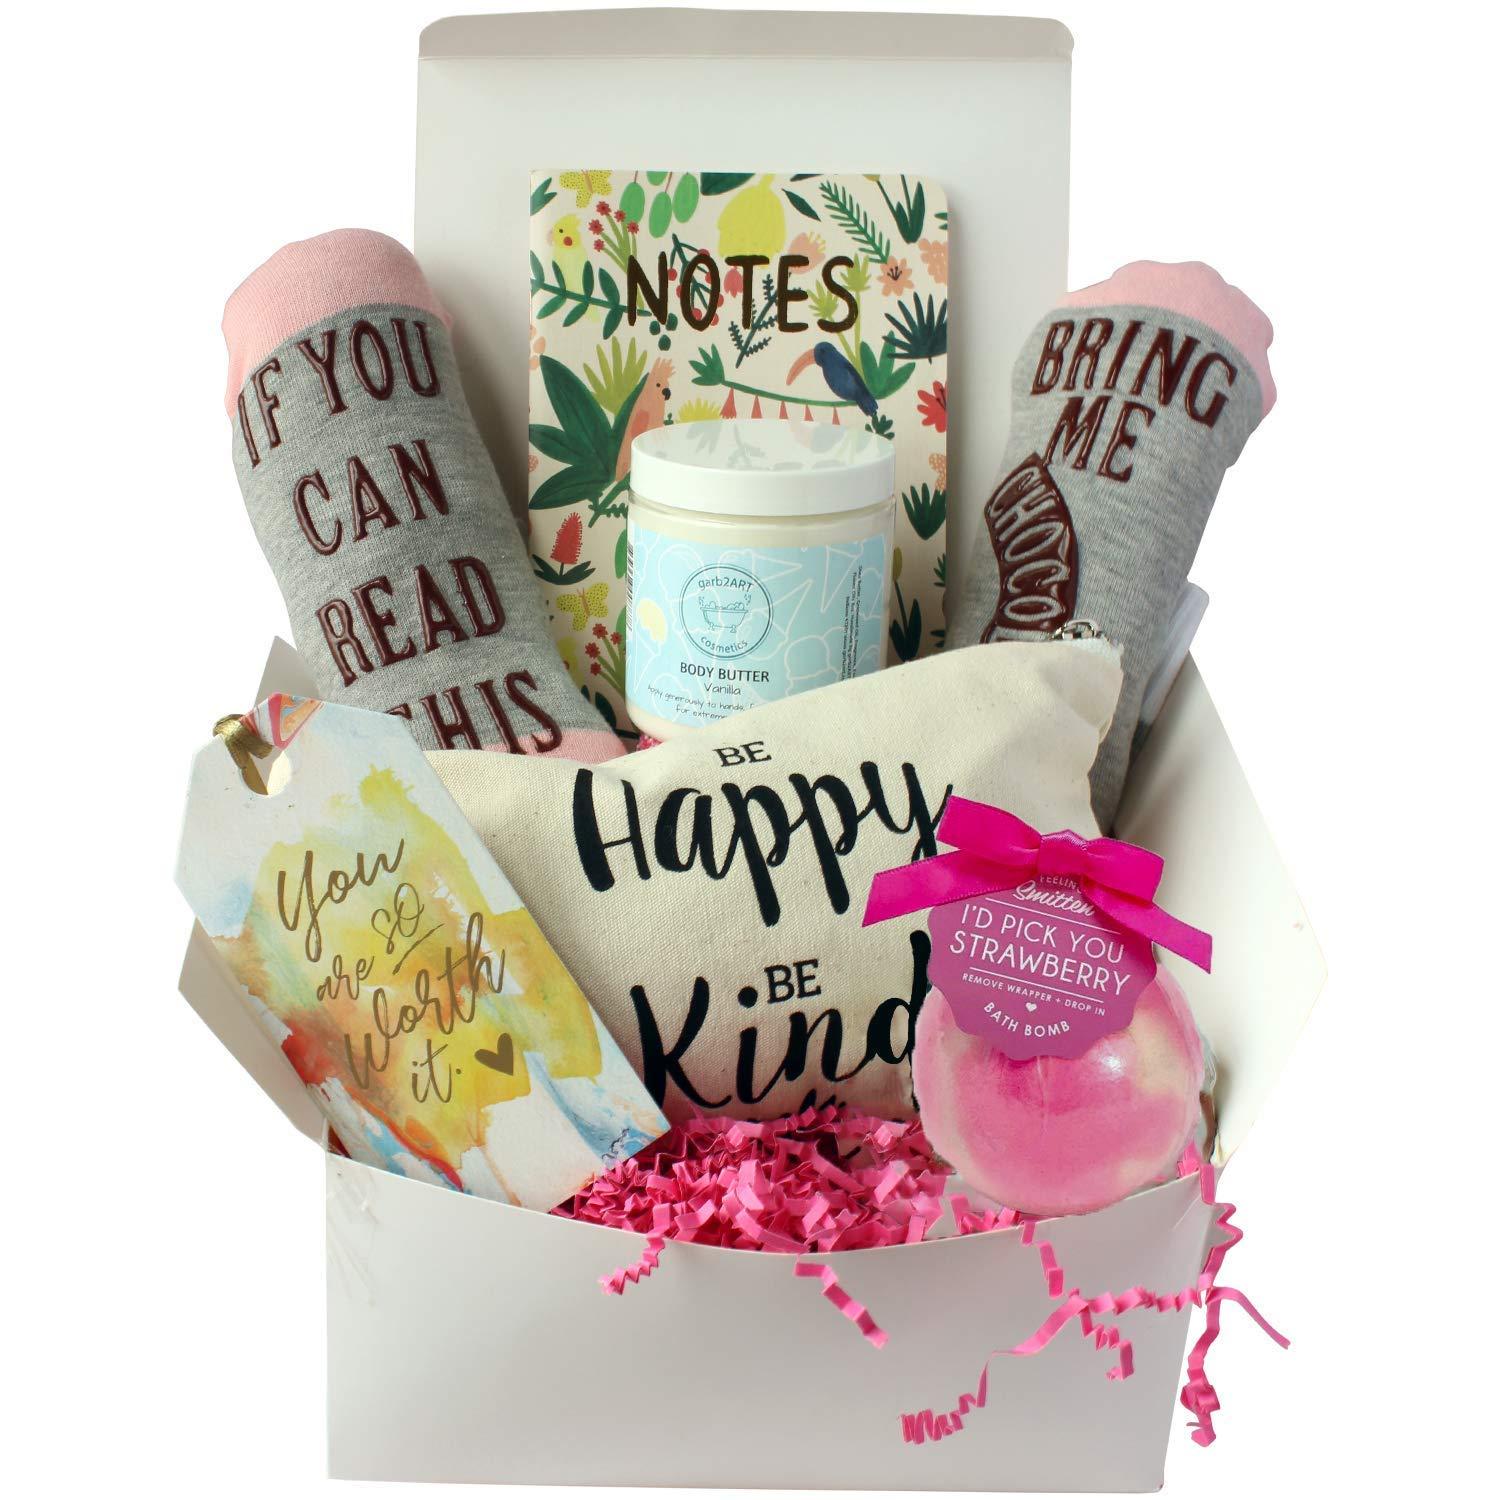 Special Birthday Gift Basket Box for Her- Unique Gift Basket Box for Mother's Day,Wife,Friend,Aunt,Sister- Special Gift For Mother's Day by Milky Chic